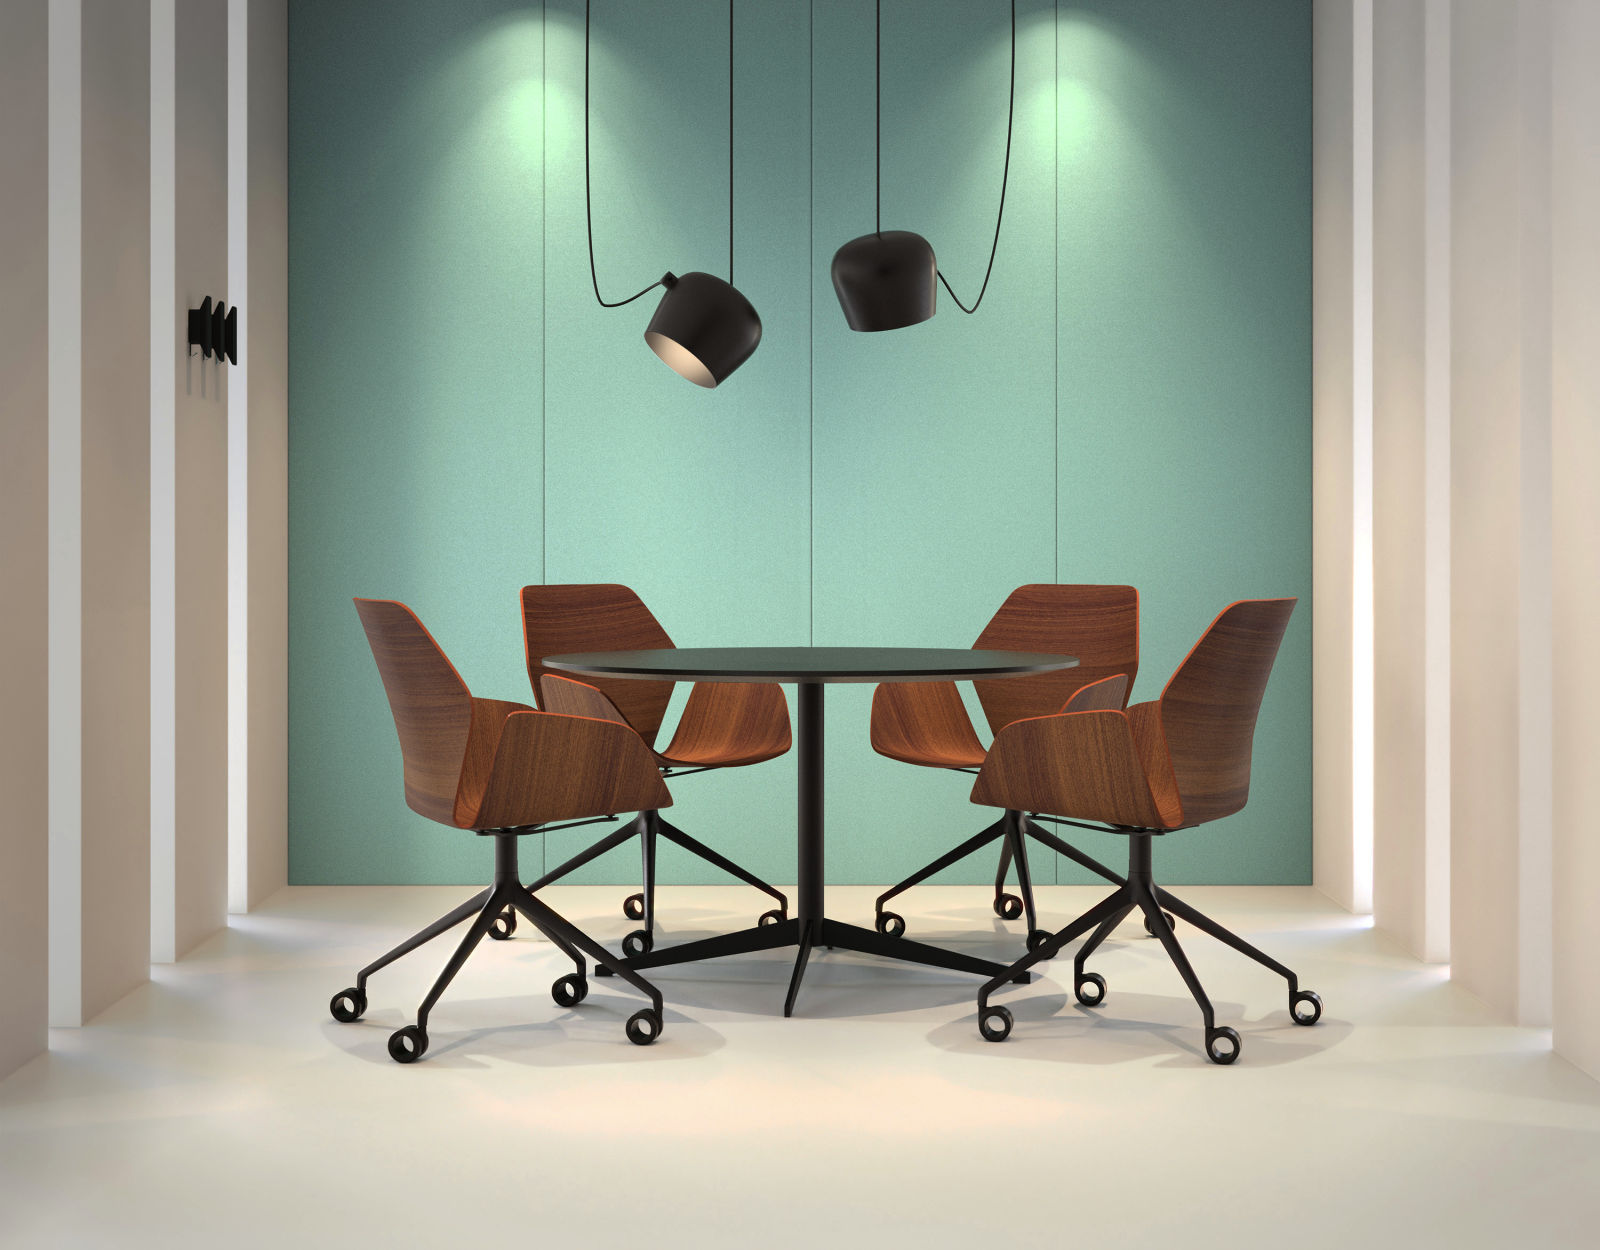 Western Office Shared Spaces Idea Lookbook - Conference table chairs with wheels